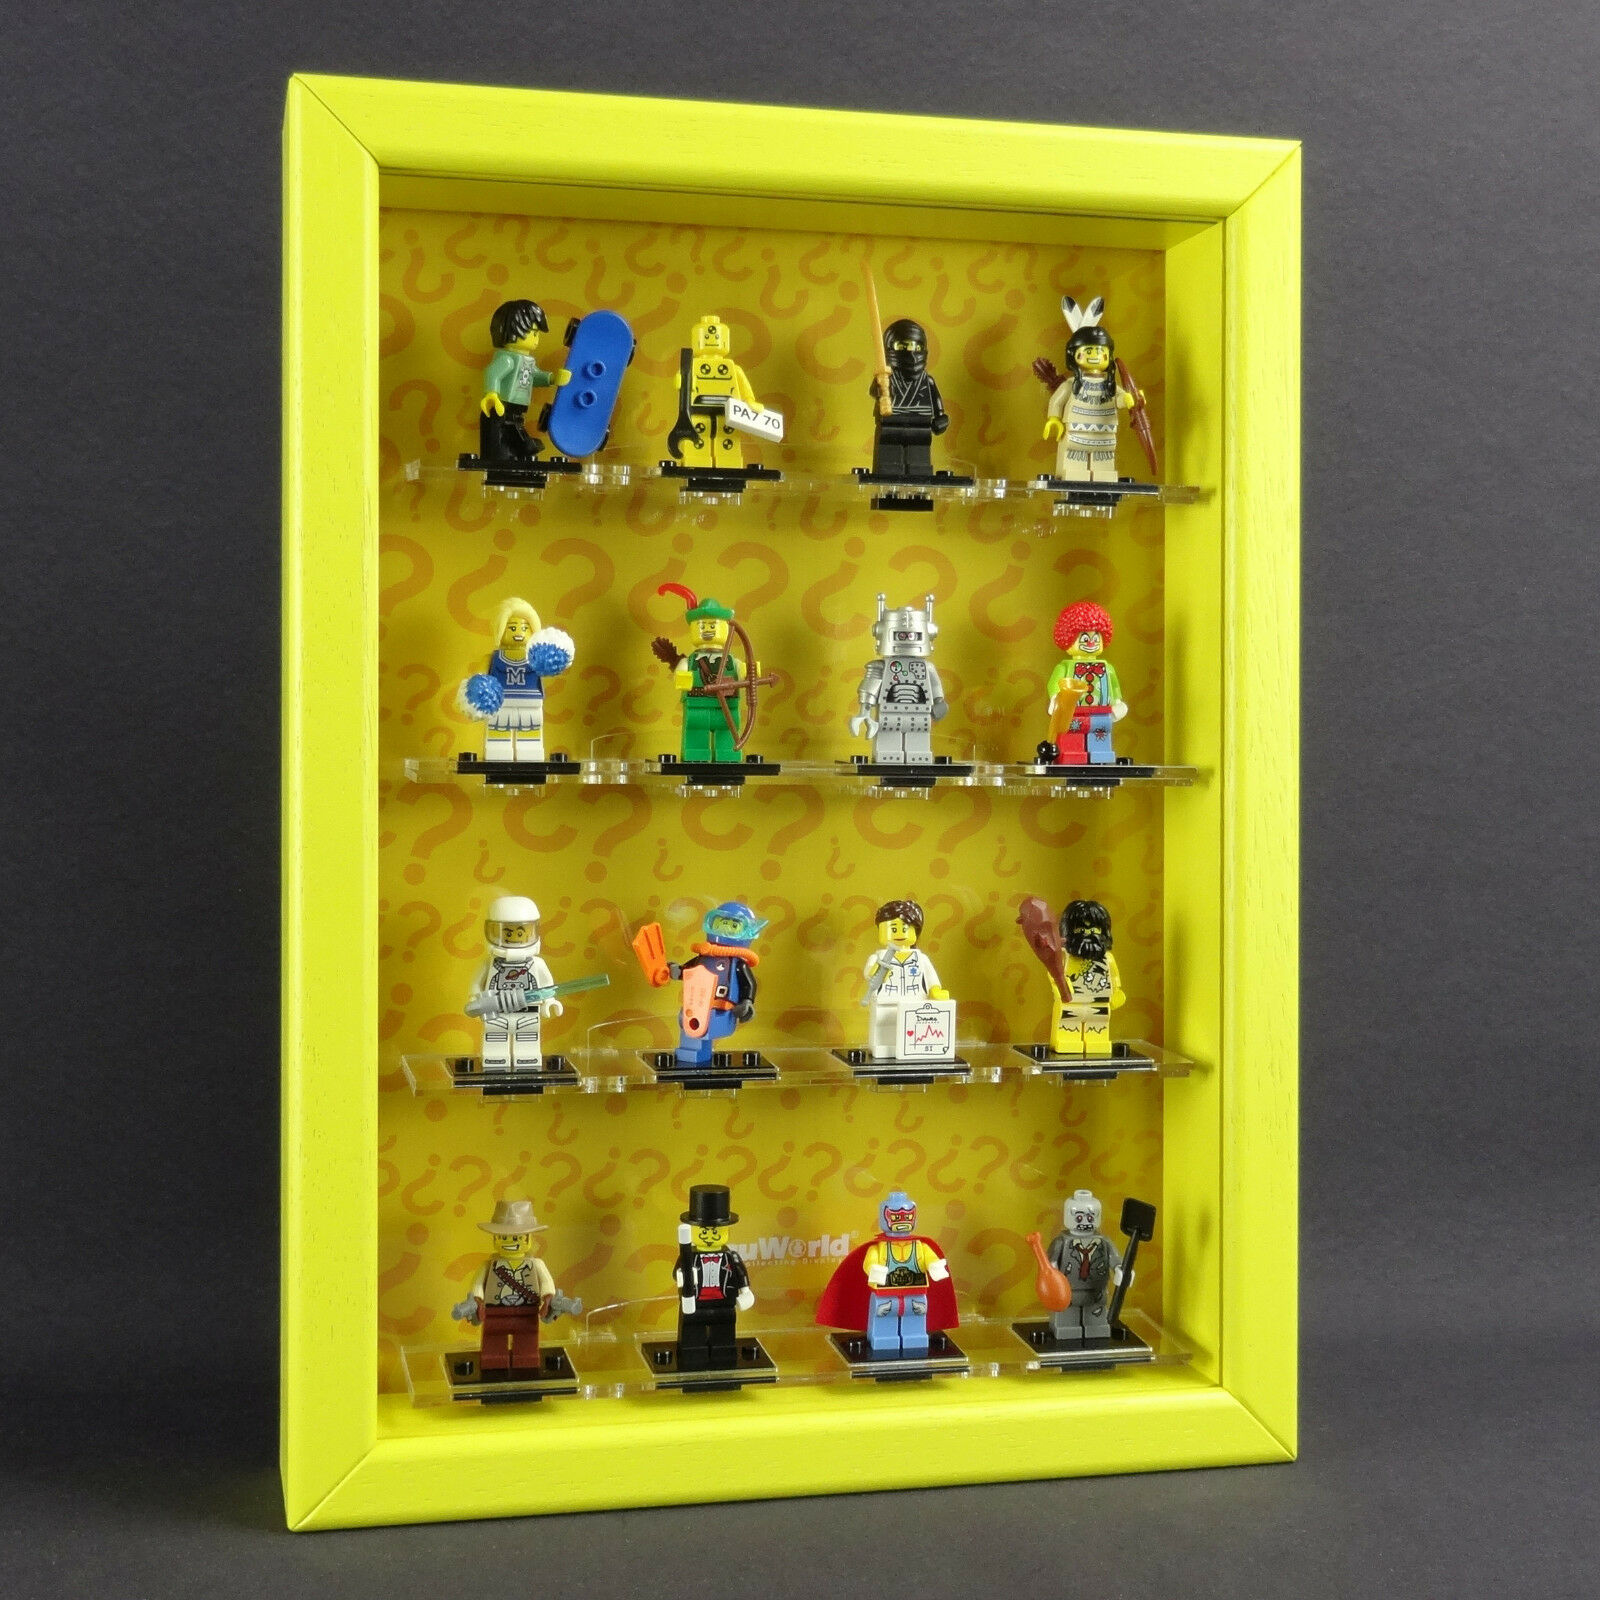 Figucase Collect Showcase for Lego Series 8683 Mini Figurines Series 1 Showcase